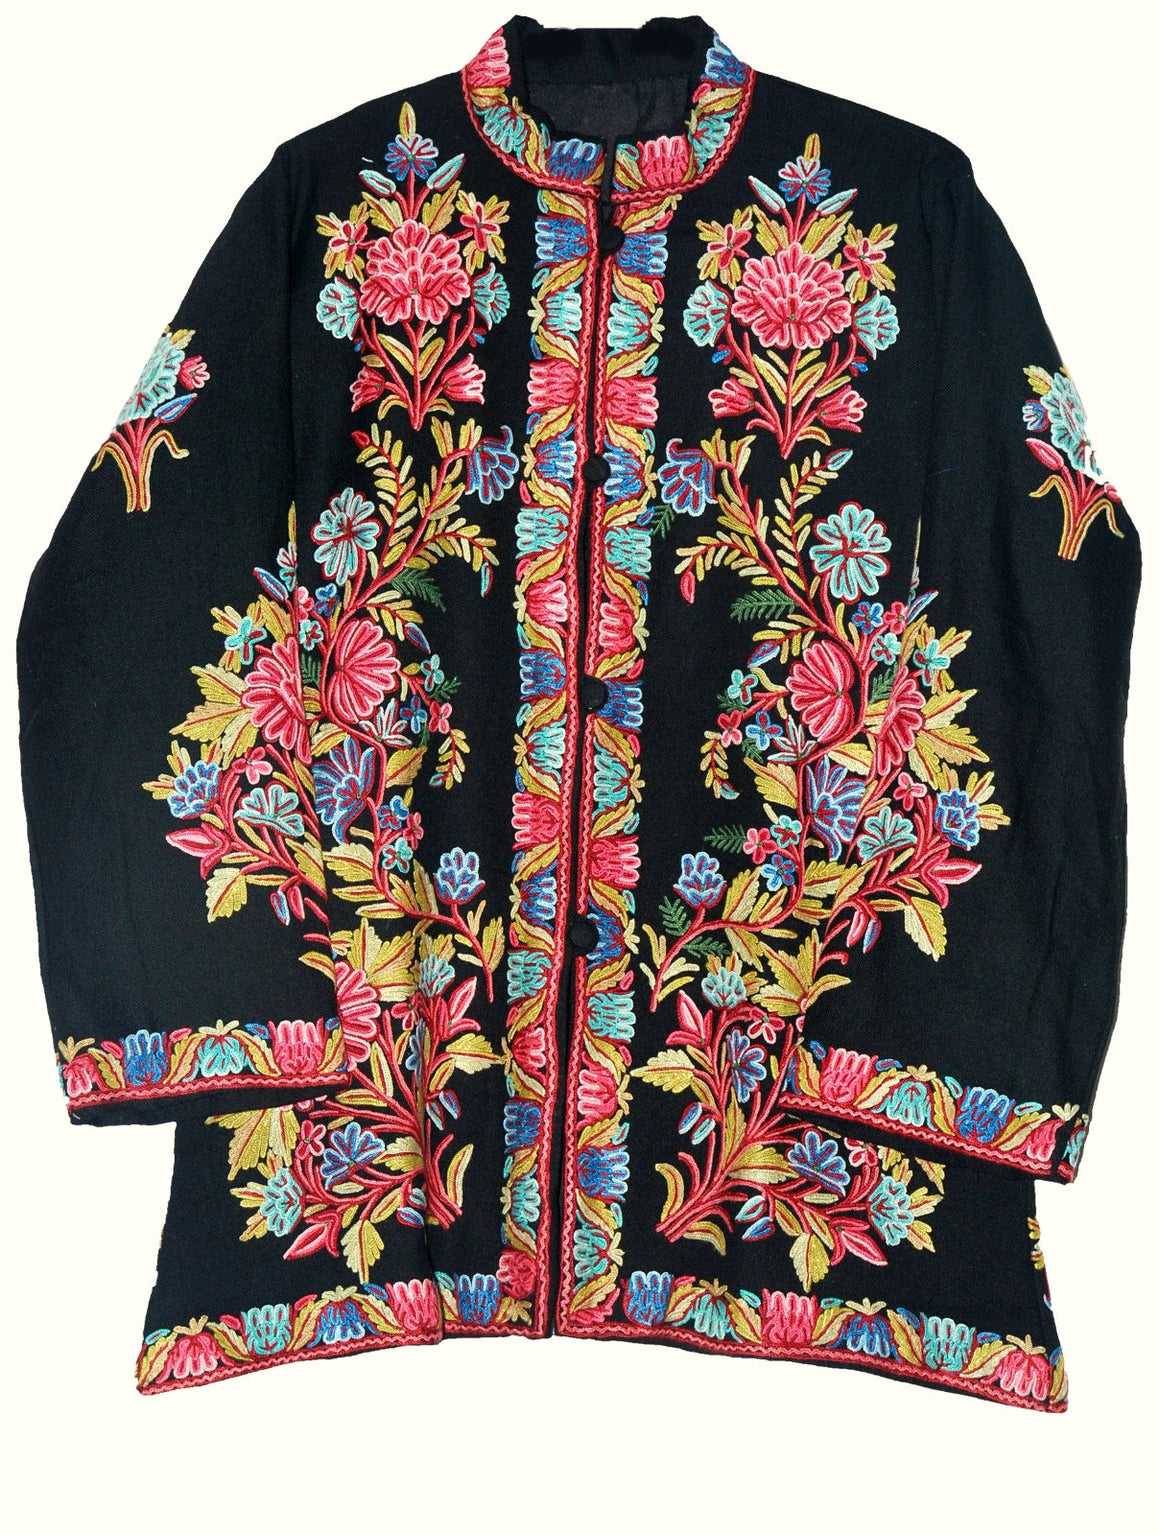 Embroidered Woolen Jacket Black, Multicolor Embroidery #AO-013